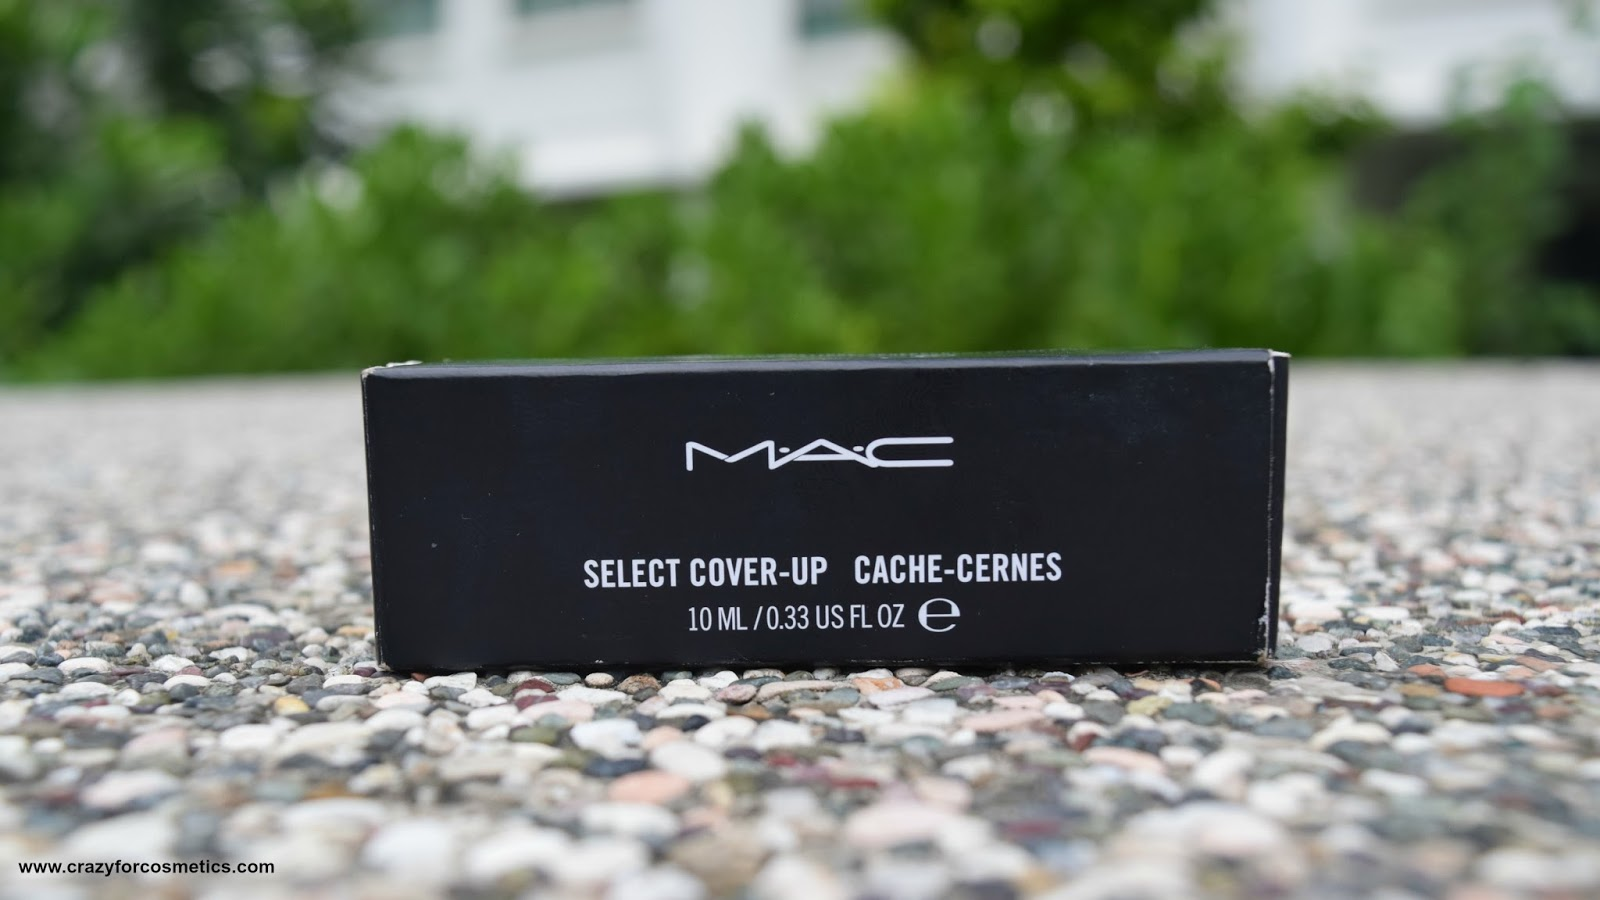 Have you used Mac Select Cover up Concealer? Please rate in the box below